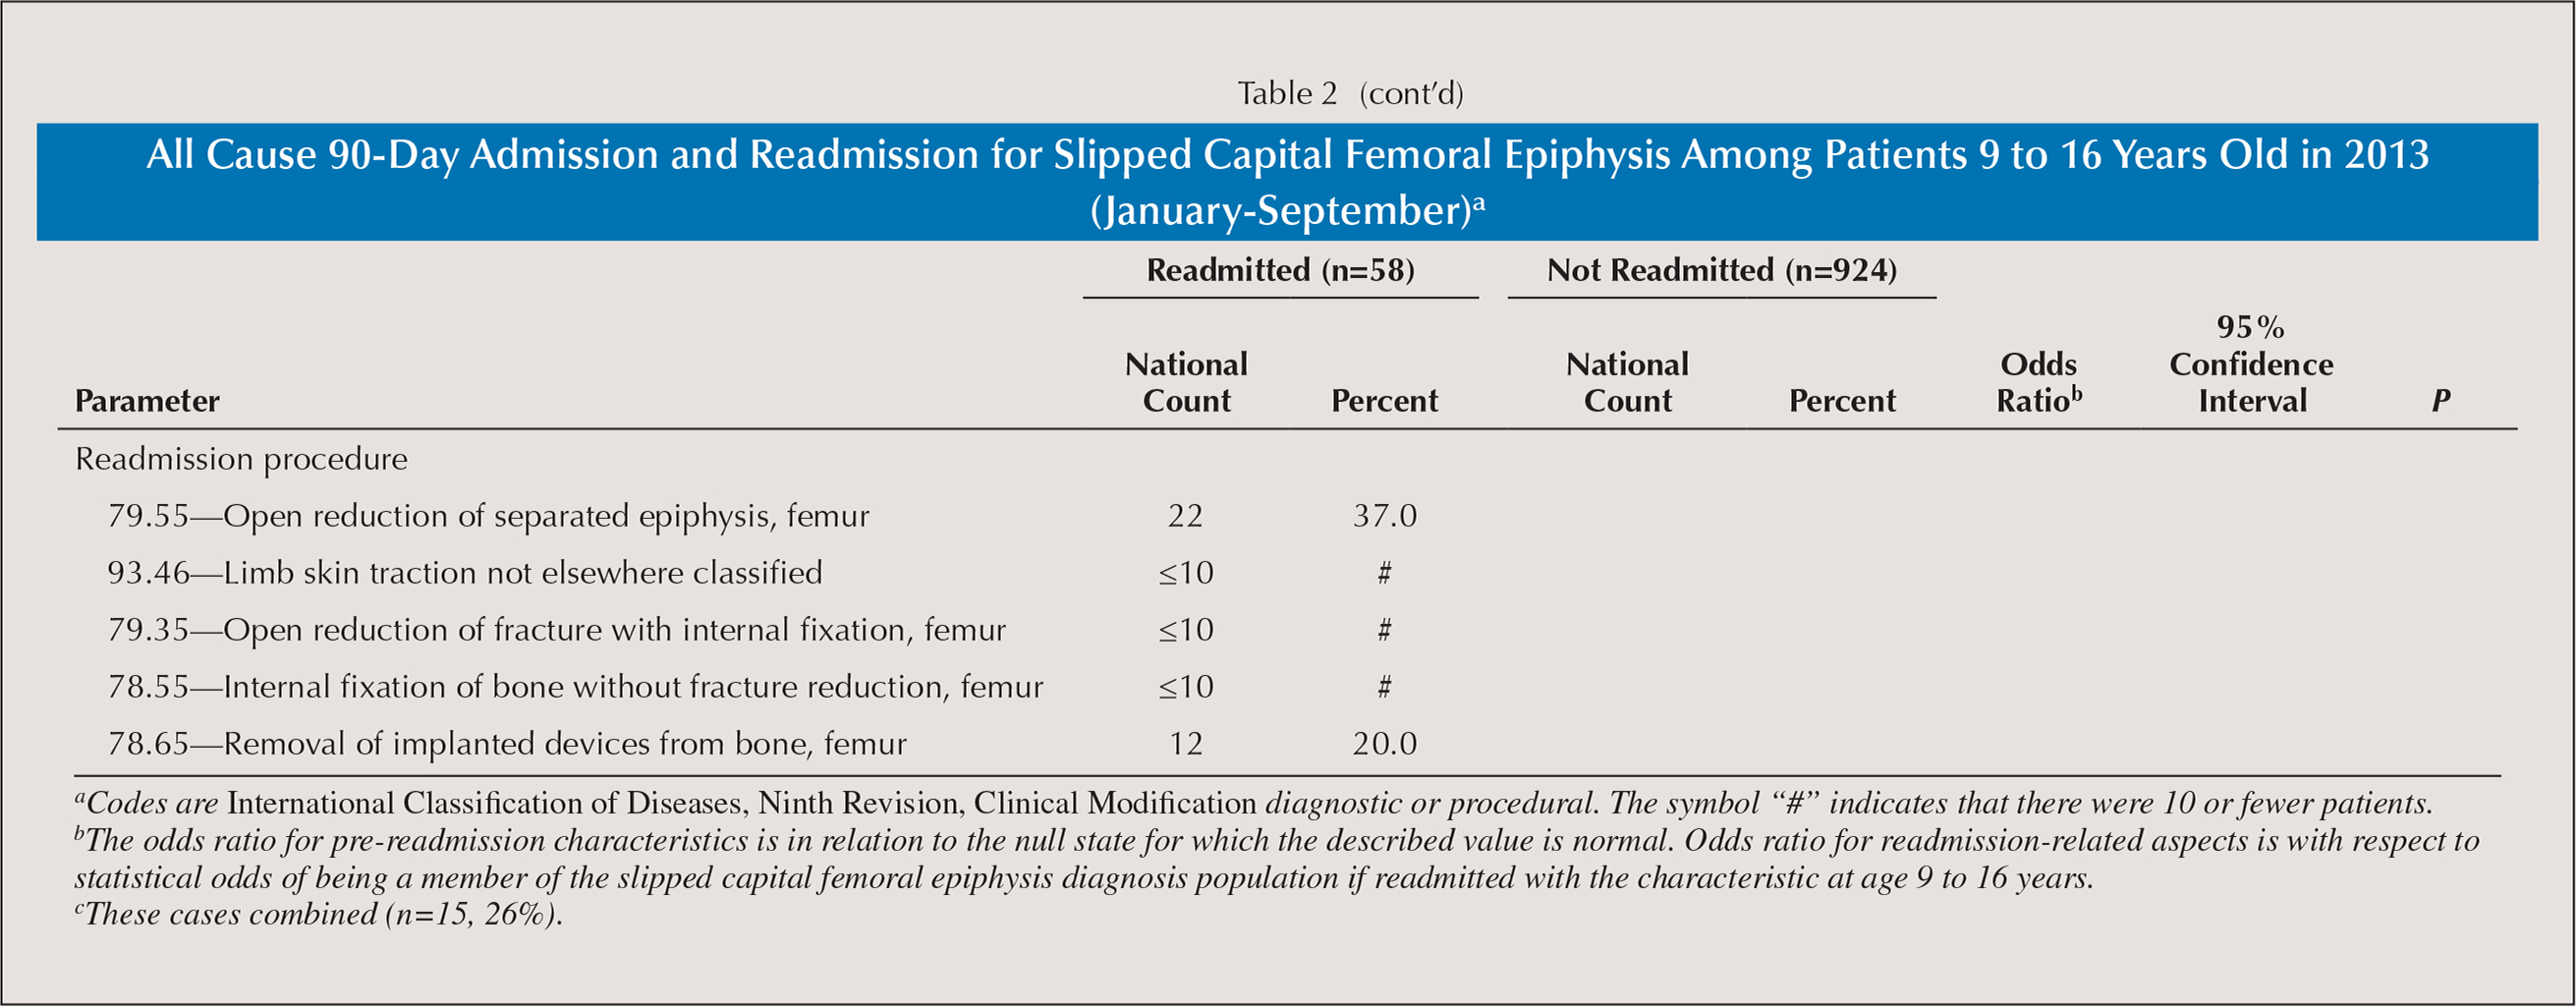 All Cause 90-Day Admission and Readmission for Slipped Capital Femoral Epiphysis Among Patients 9 to 16 Years Old in 2013 (January–September)a